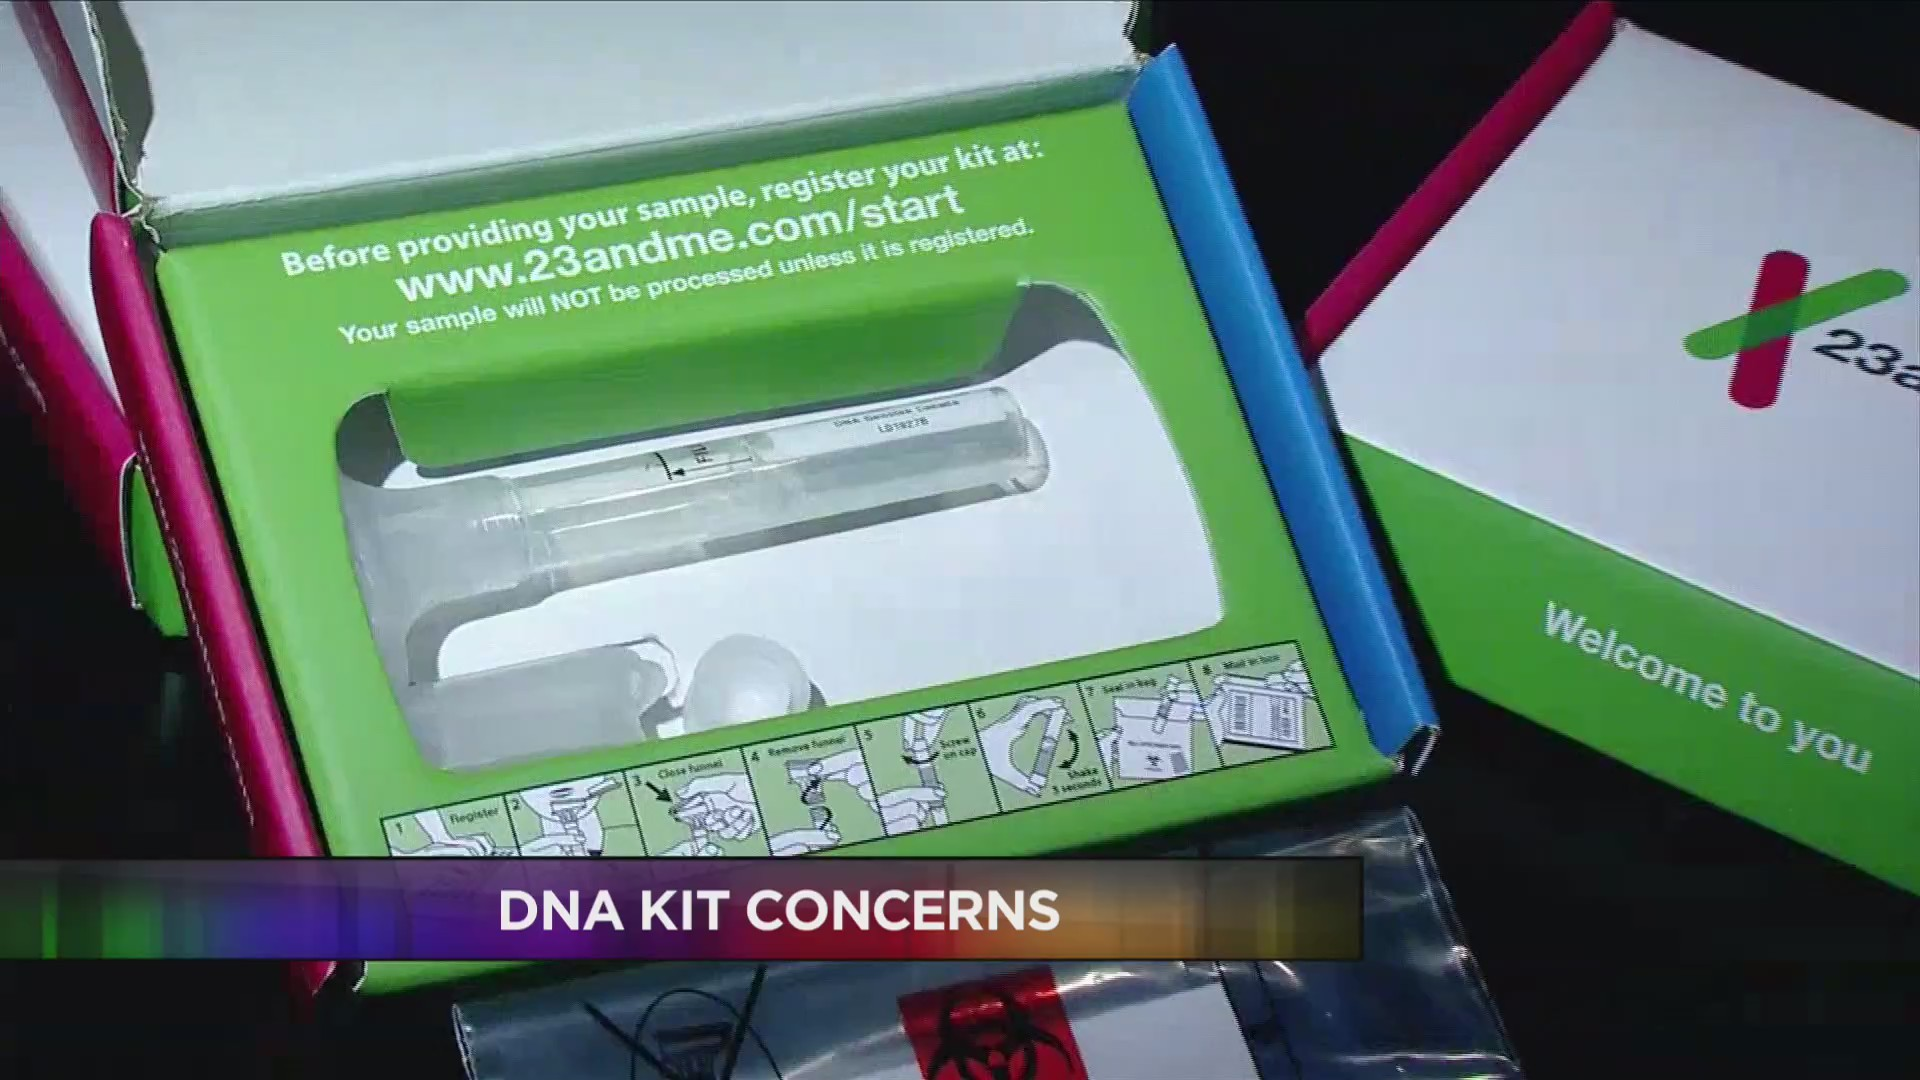 DNA_KIT_CONCERNS_0_20181217212752